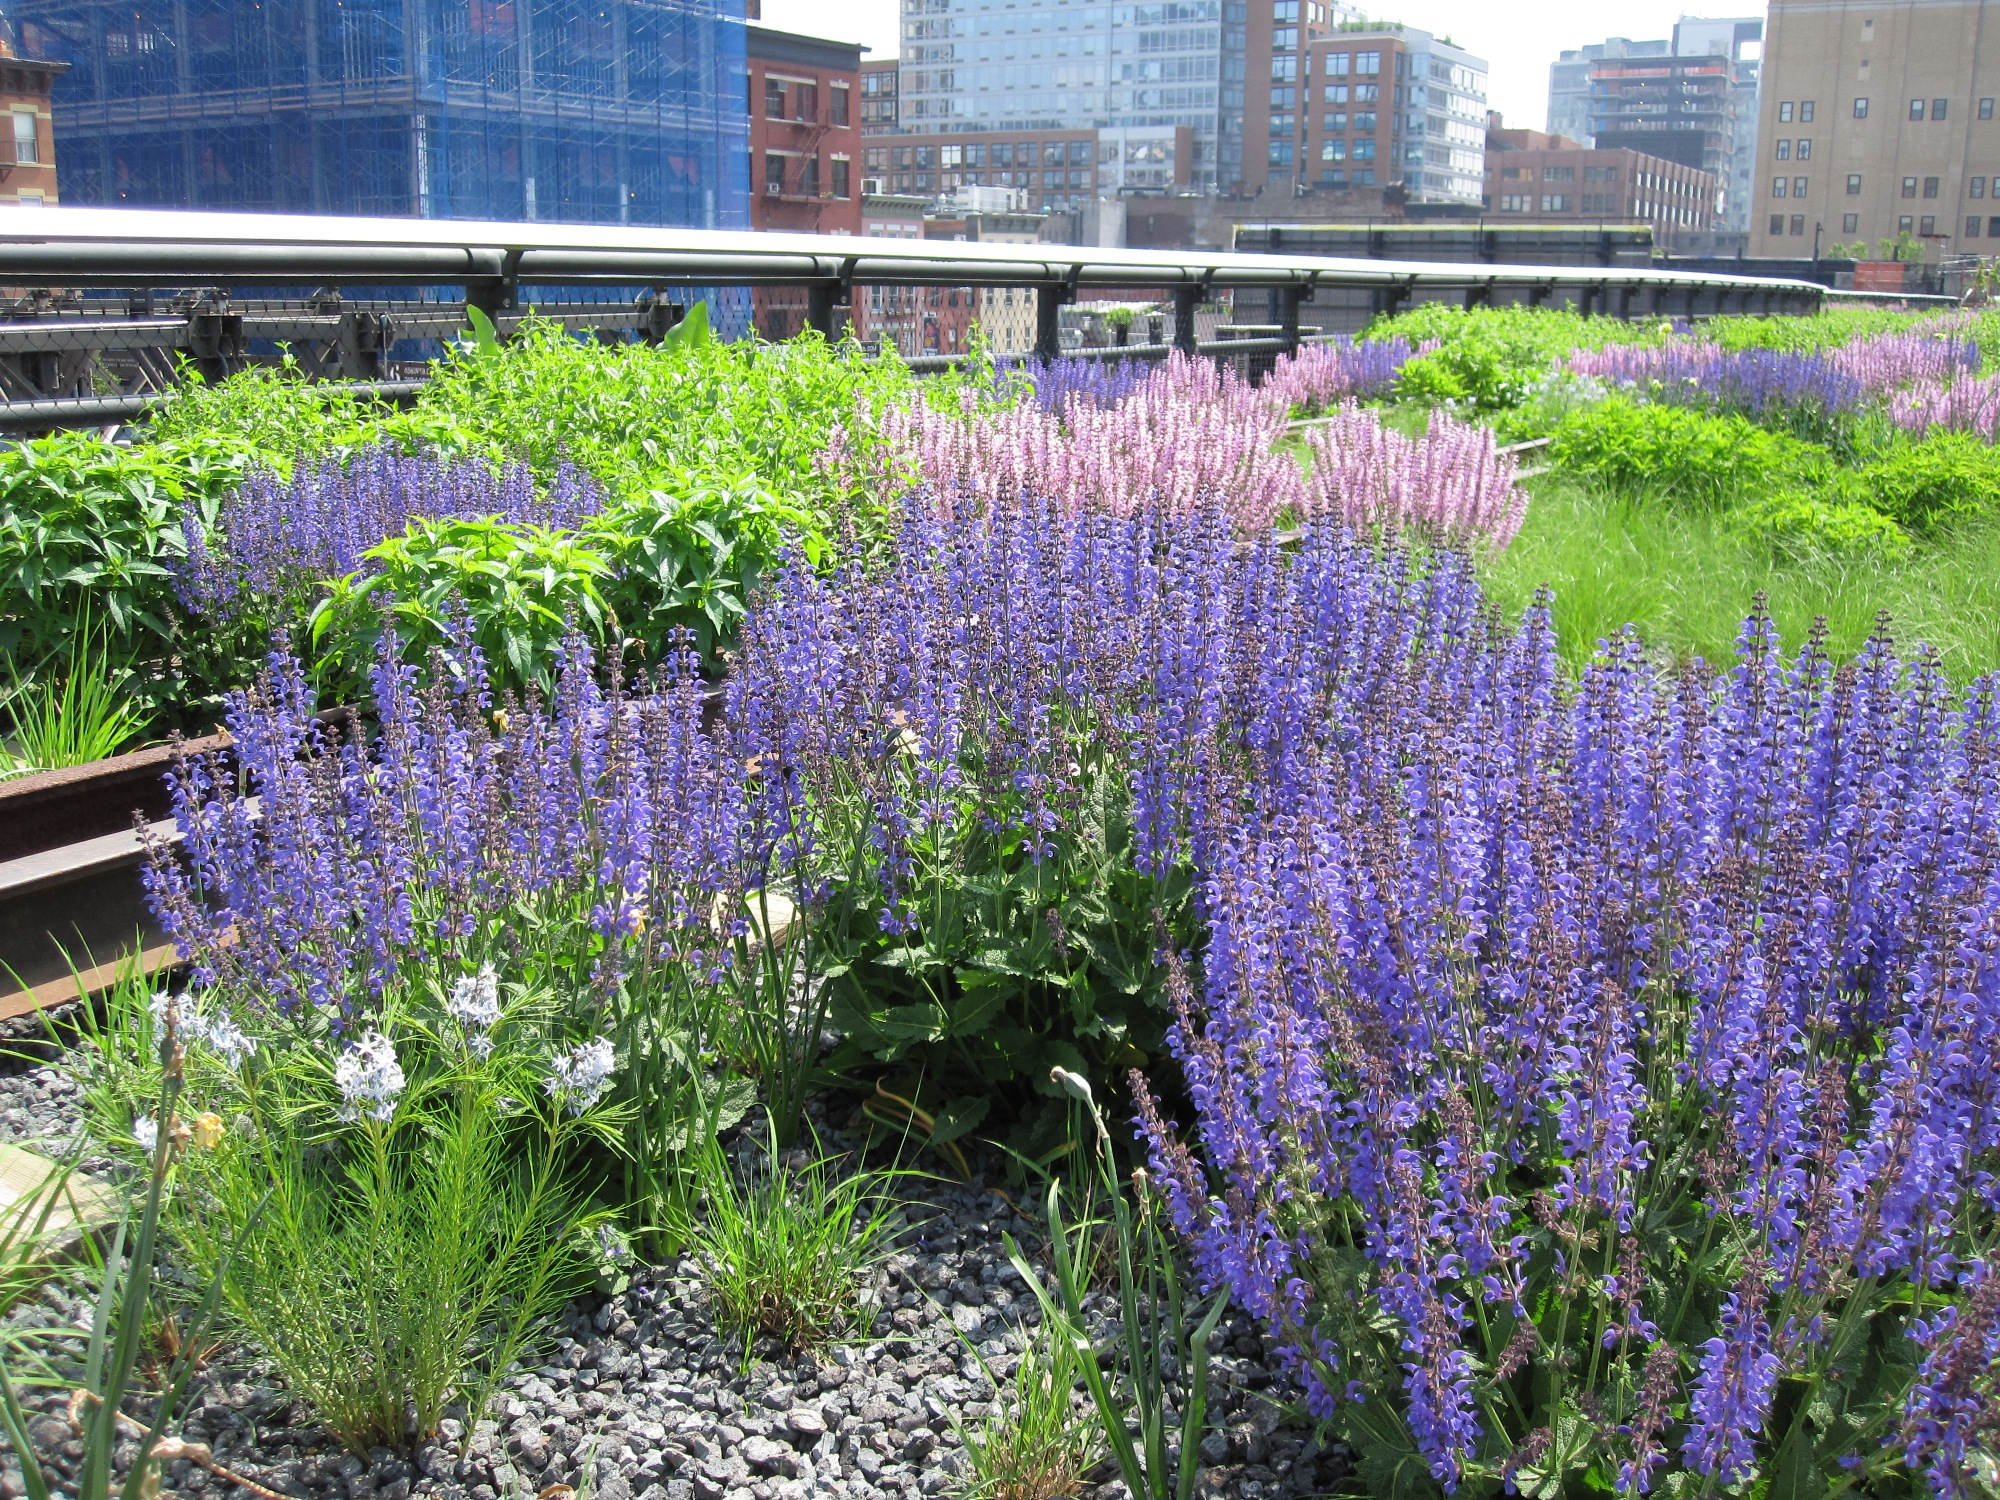 10 Reasons to Love the High Line in NYC – Everett Potter s Travel Report